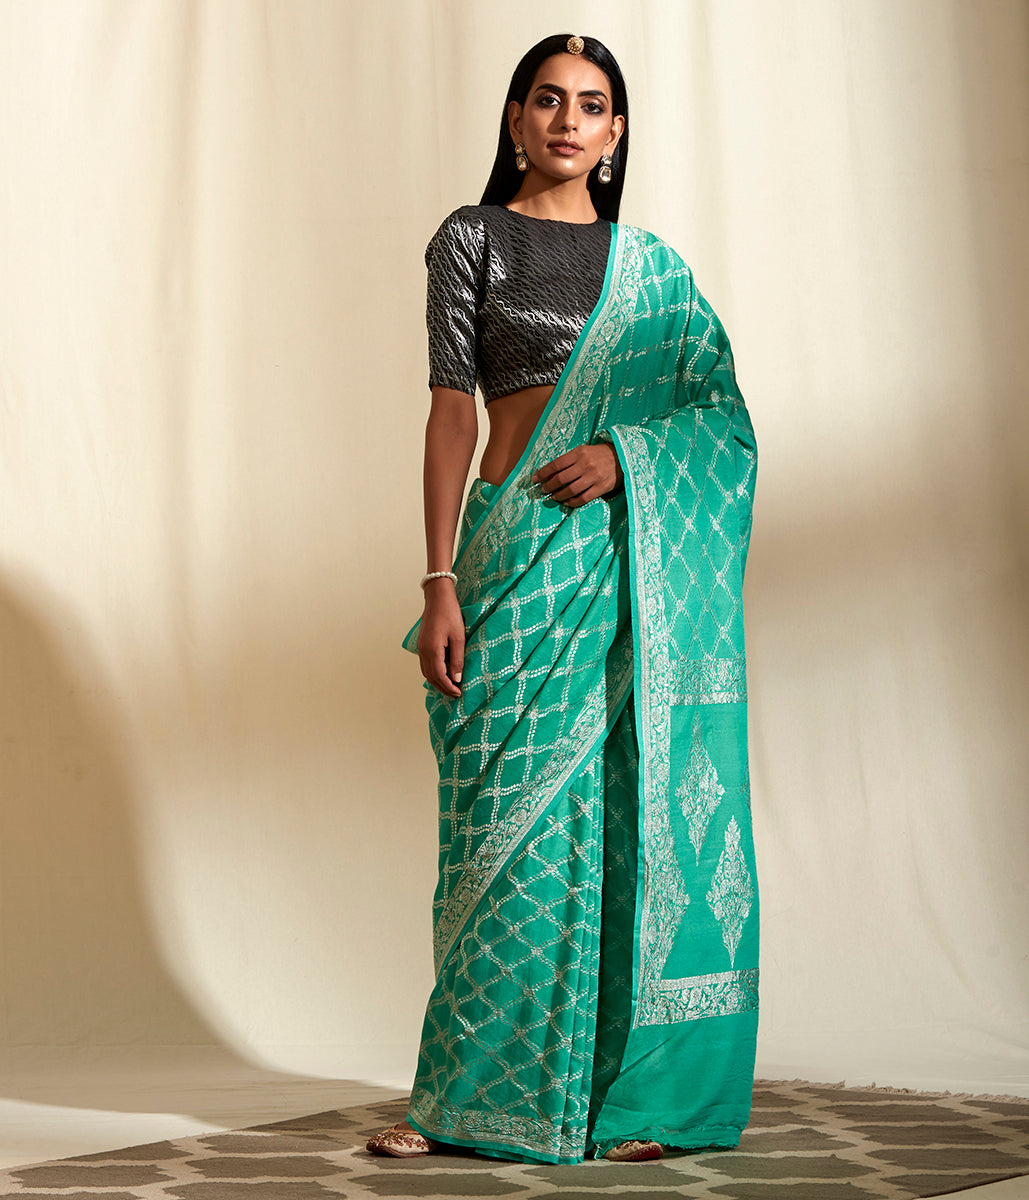 Handwoven banarasi munga silk saree with silver zari